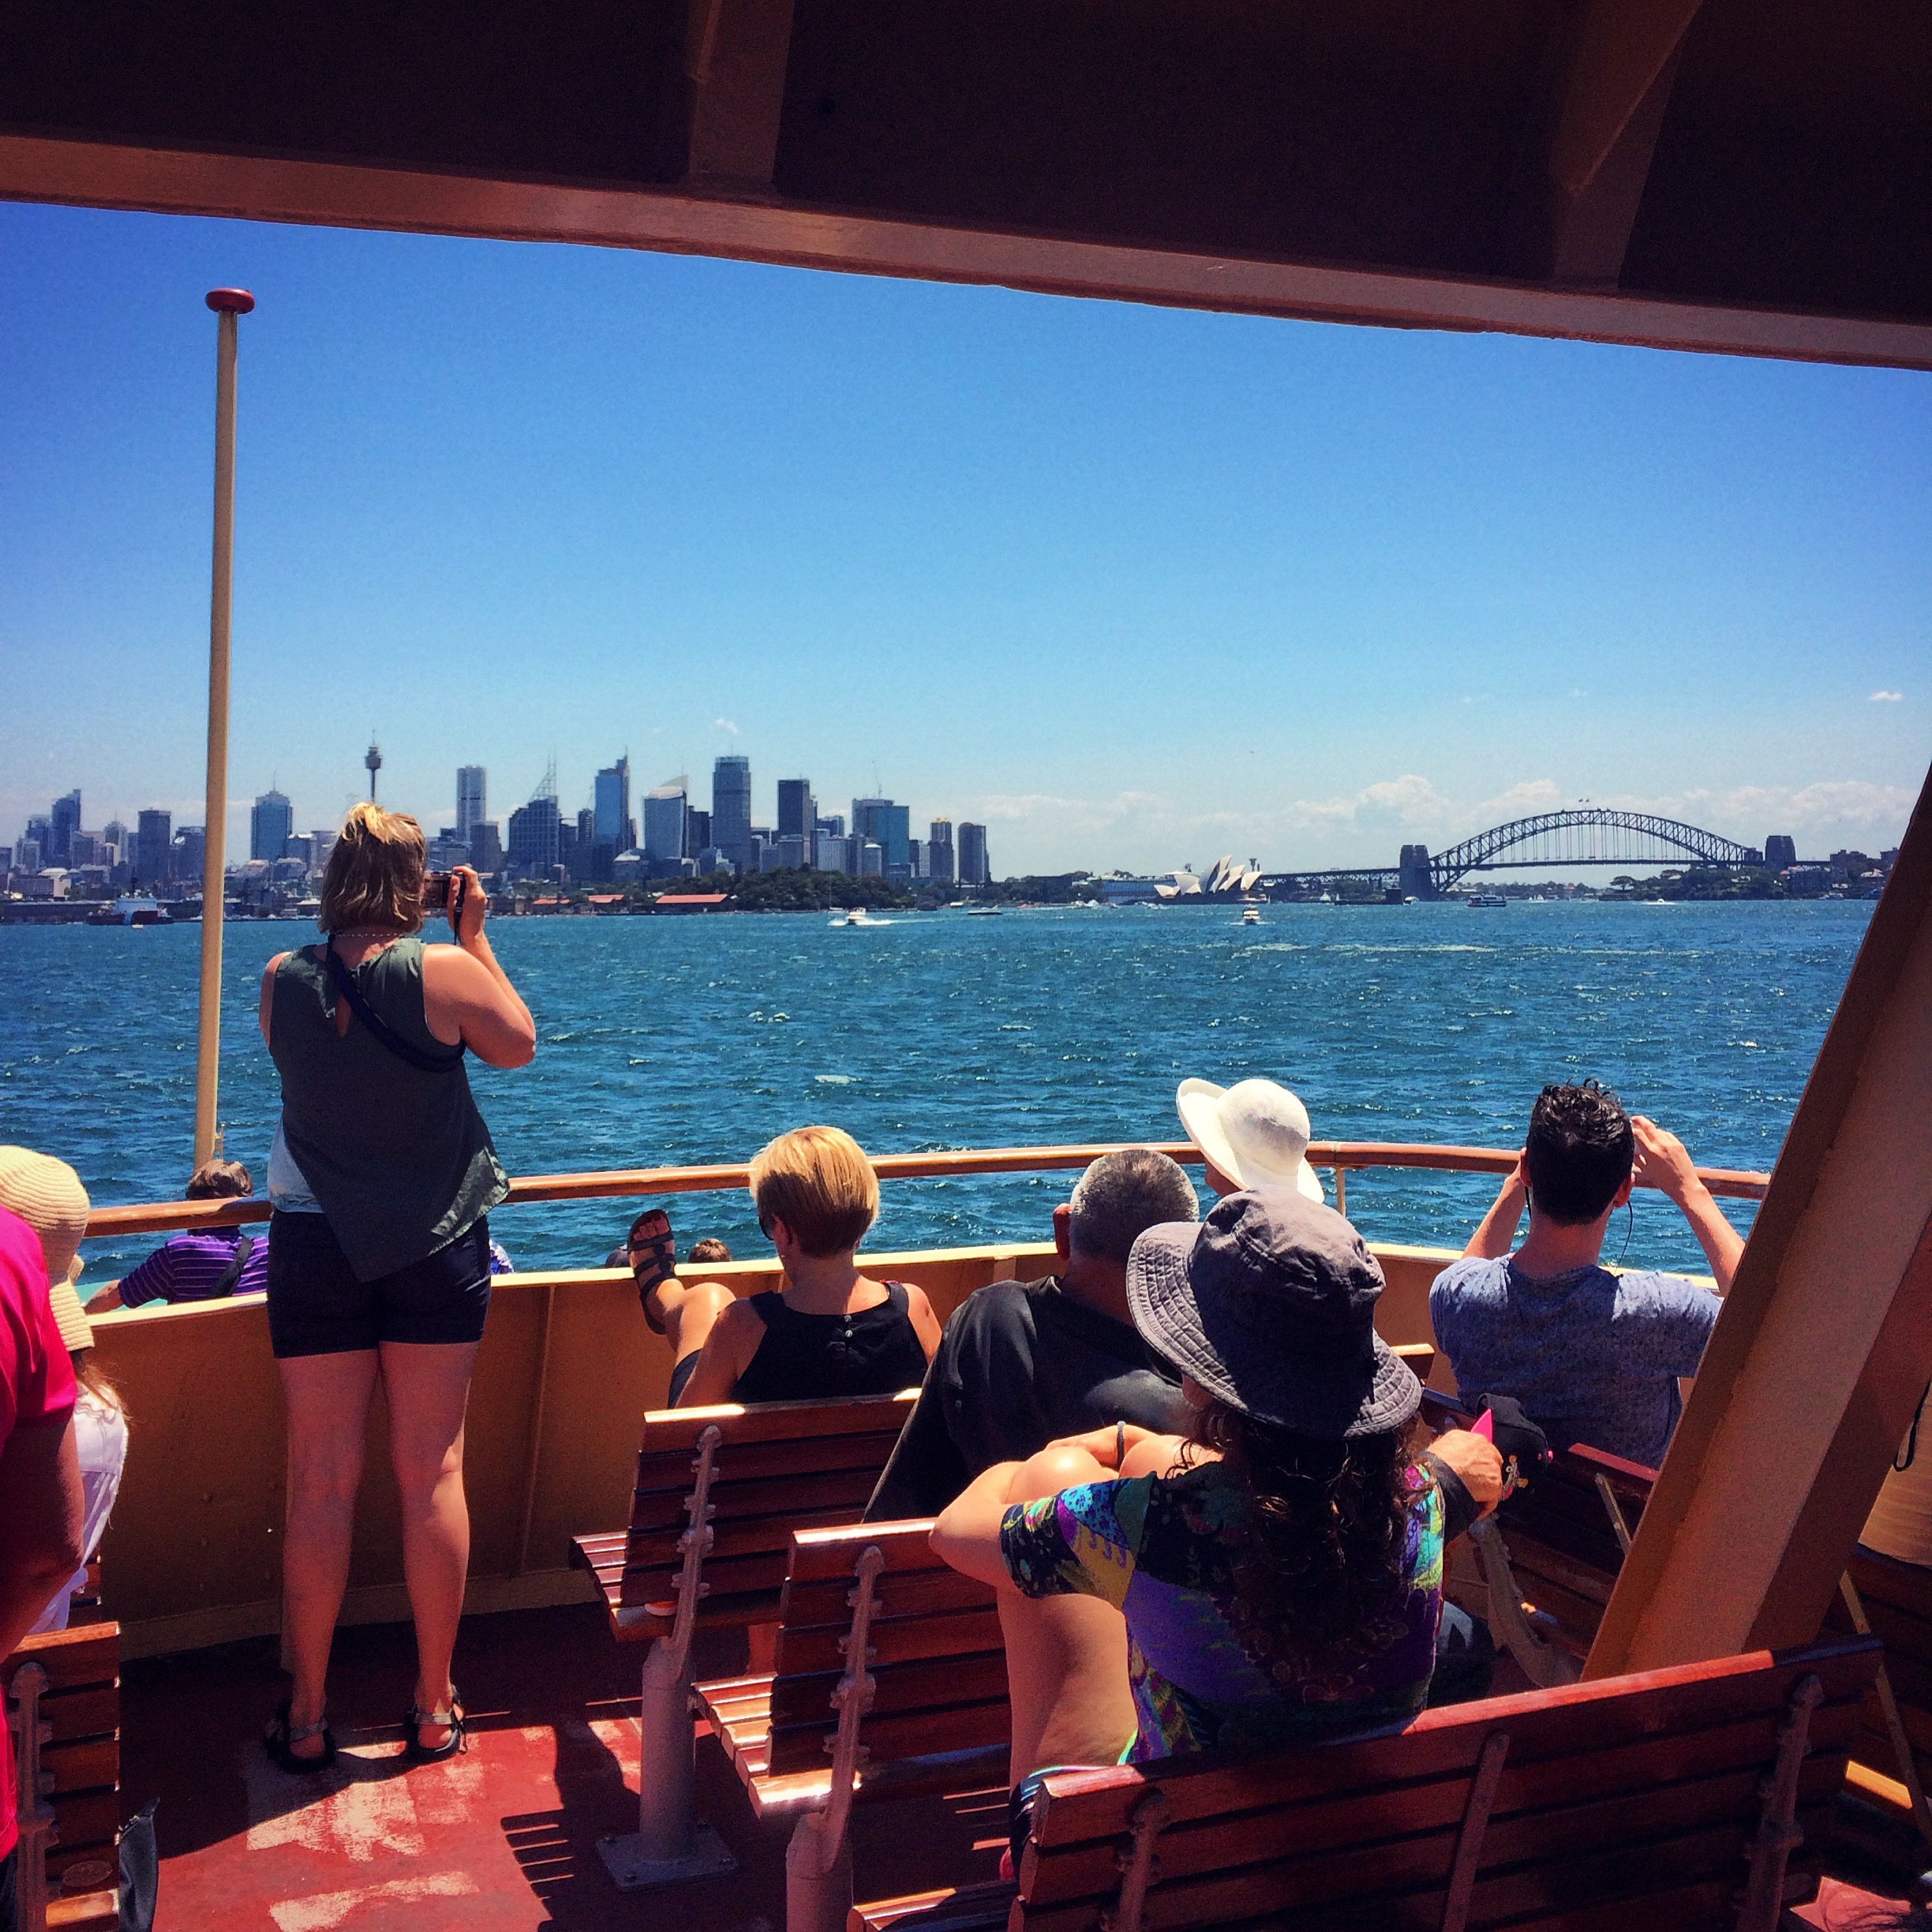 Tourists on the Ferry | Sydney Harbour